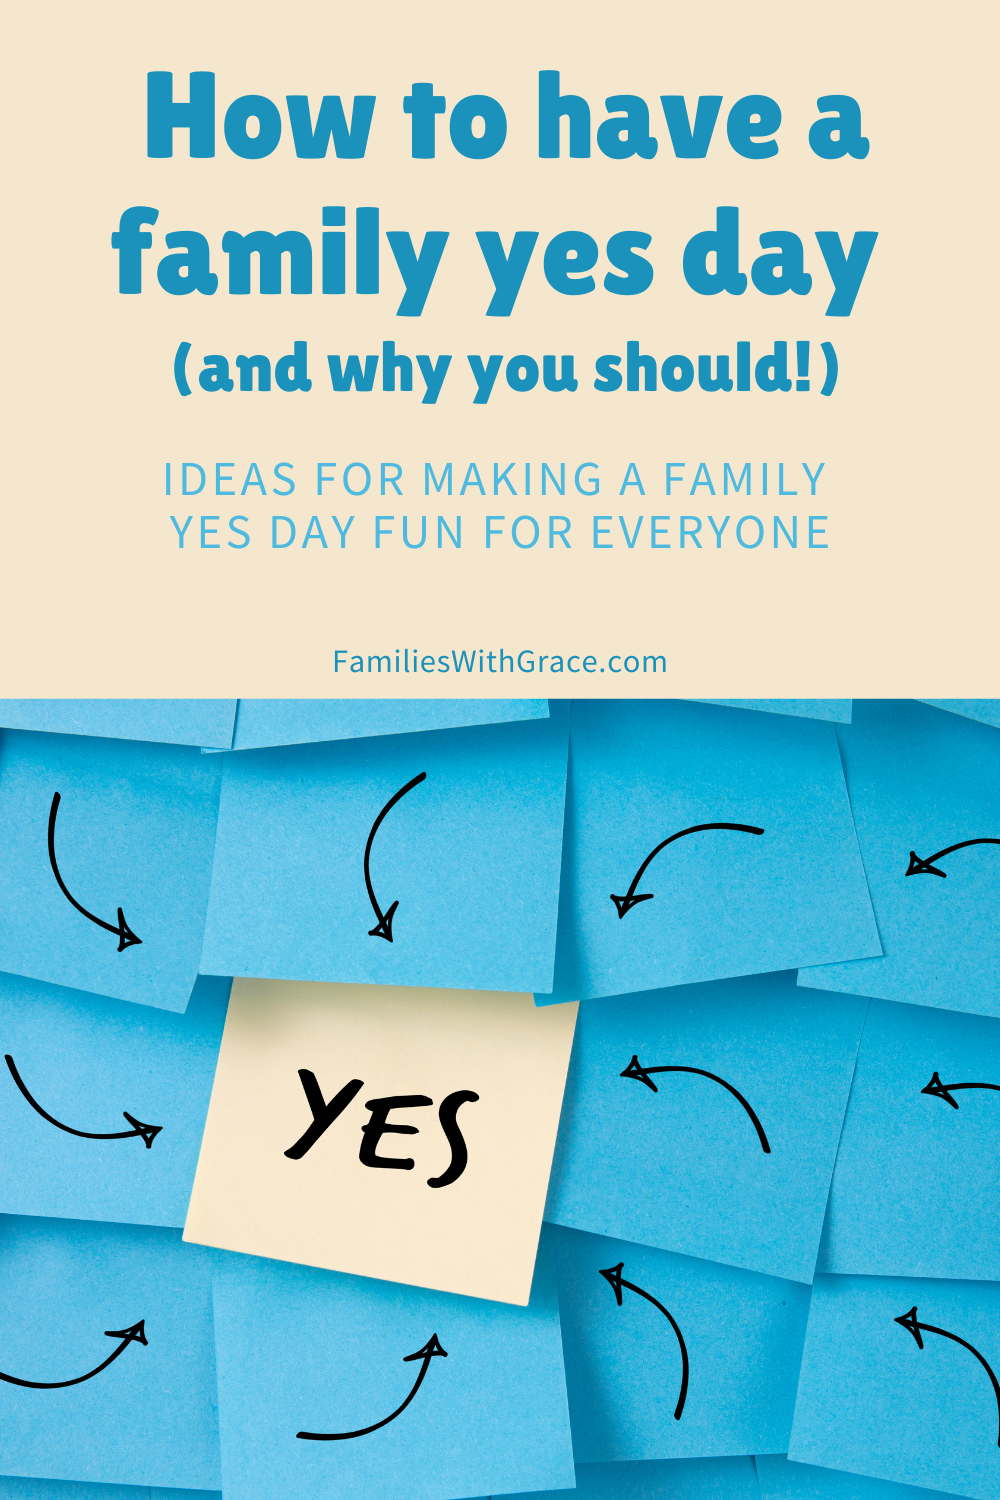 How to have a family yes day (and why you should!)